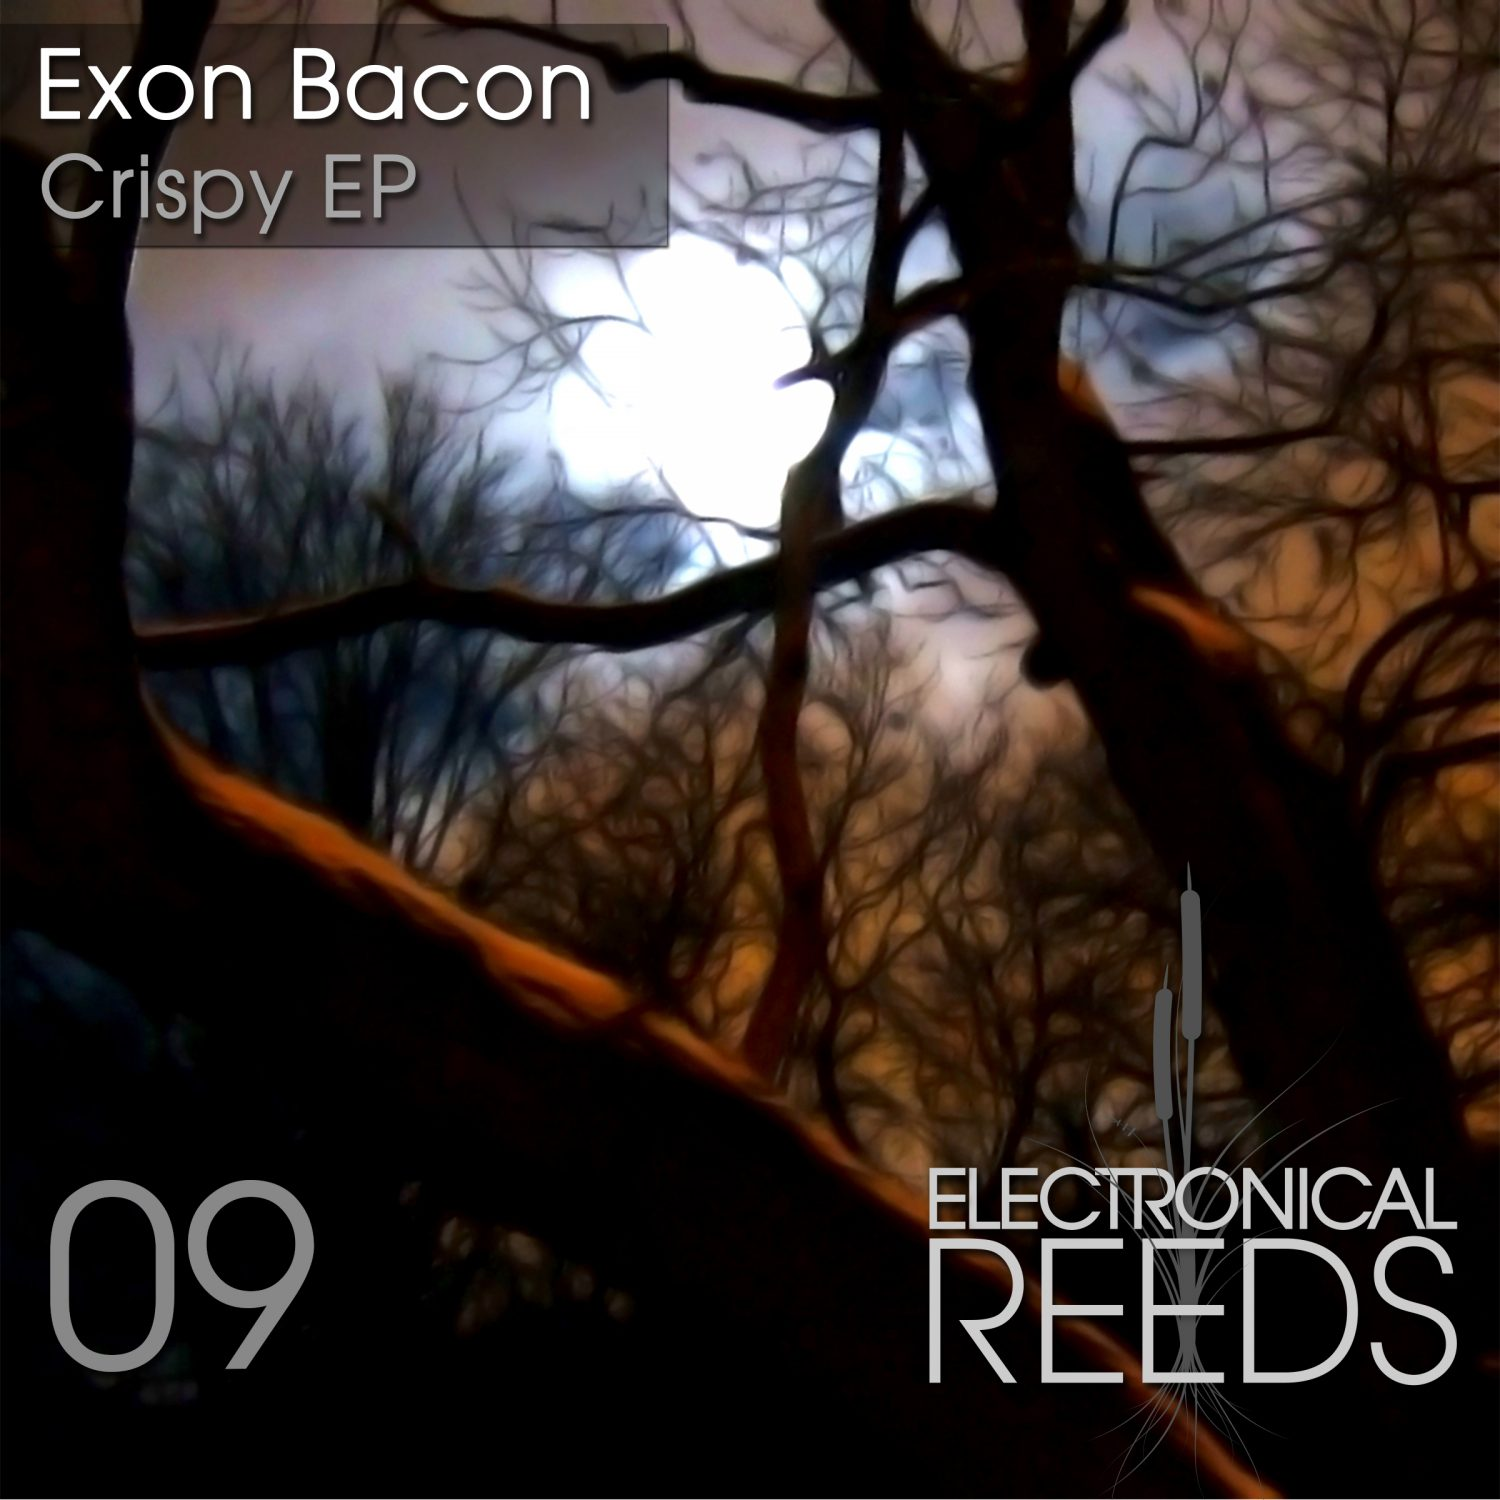 ER009 - Exon Bacon - Crispy EP - Electronical Reeds